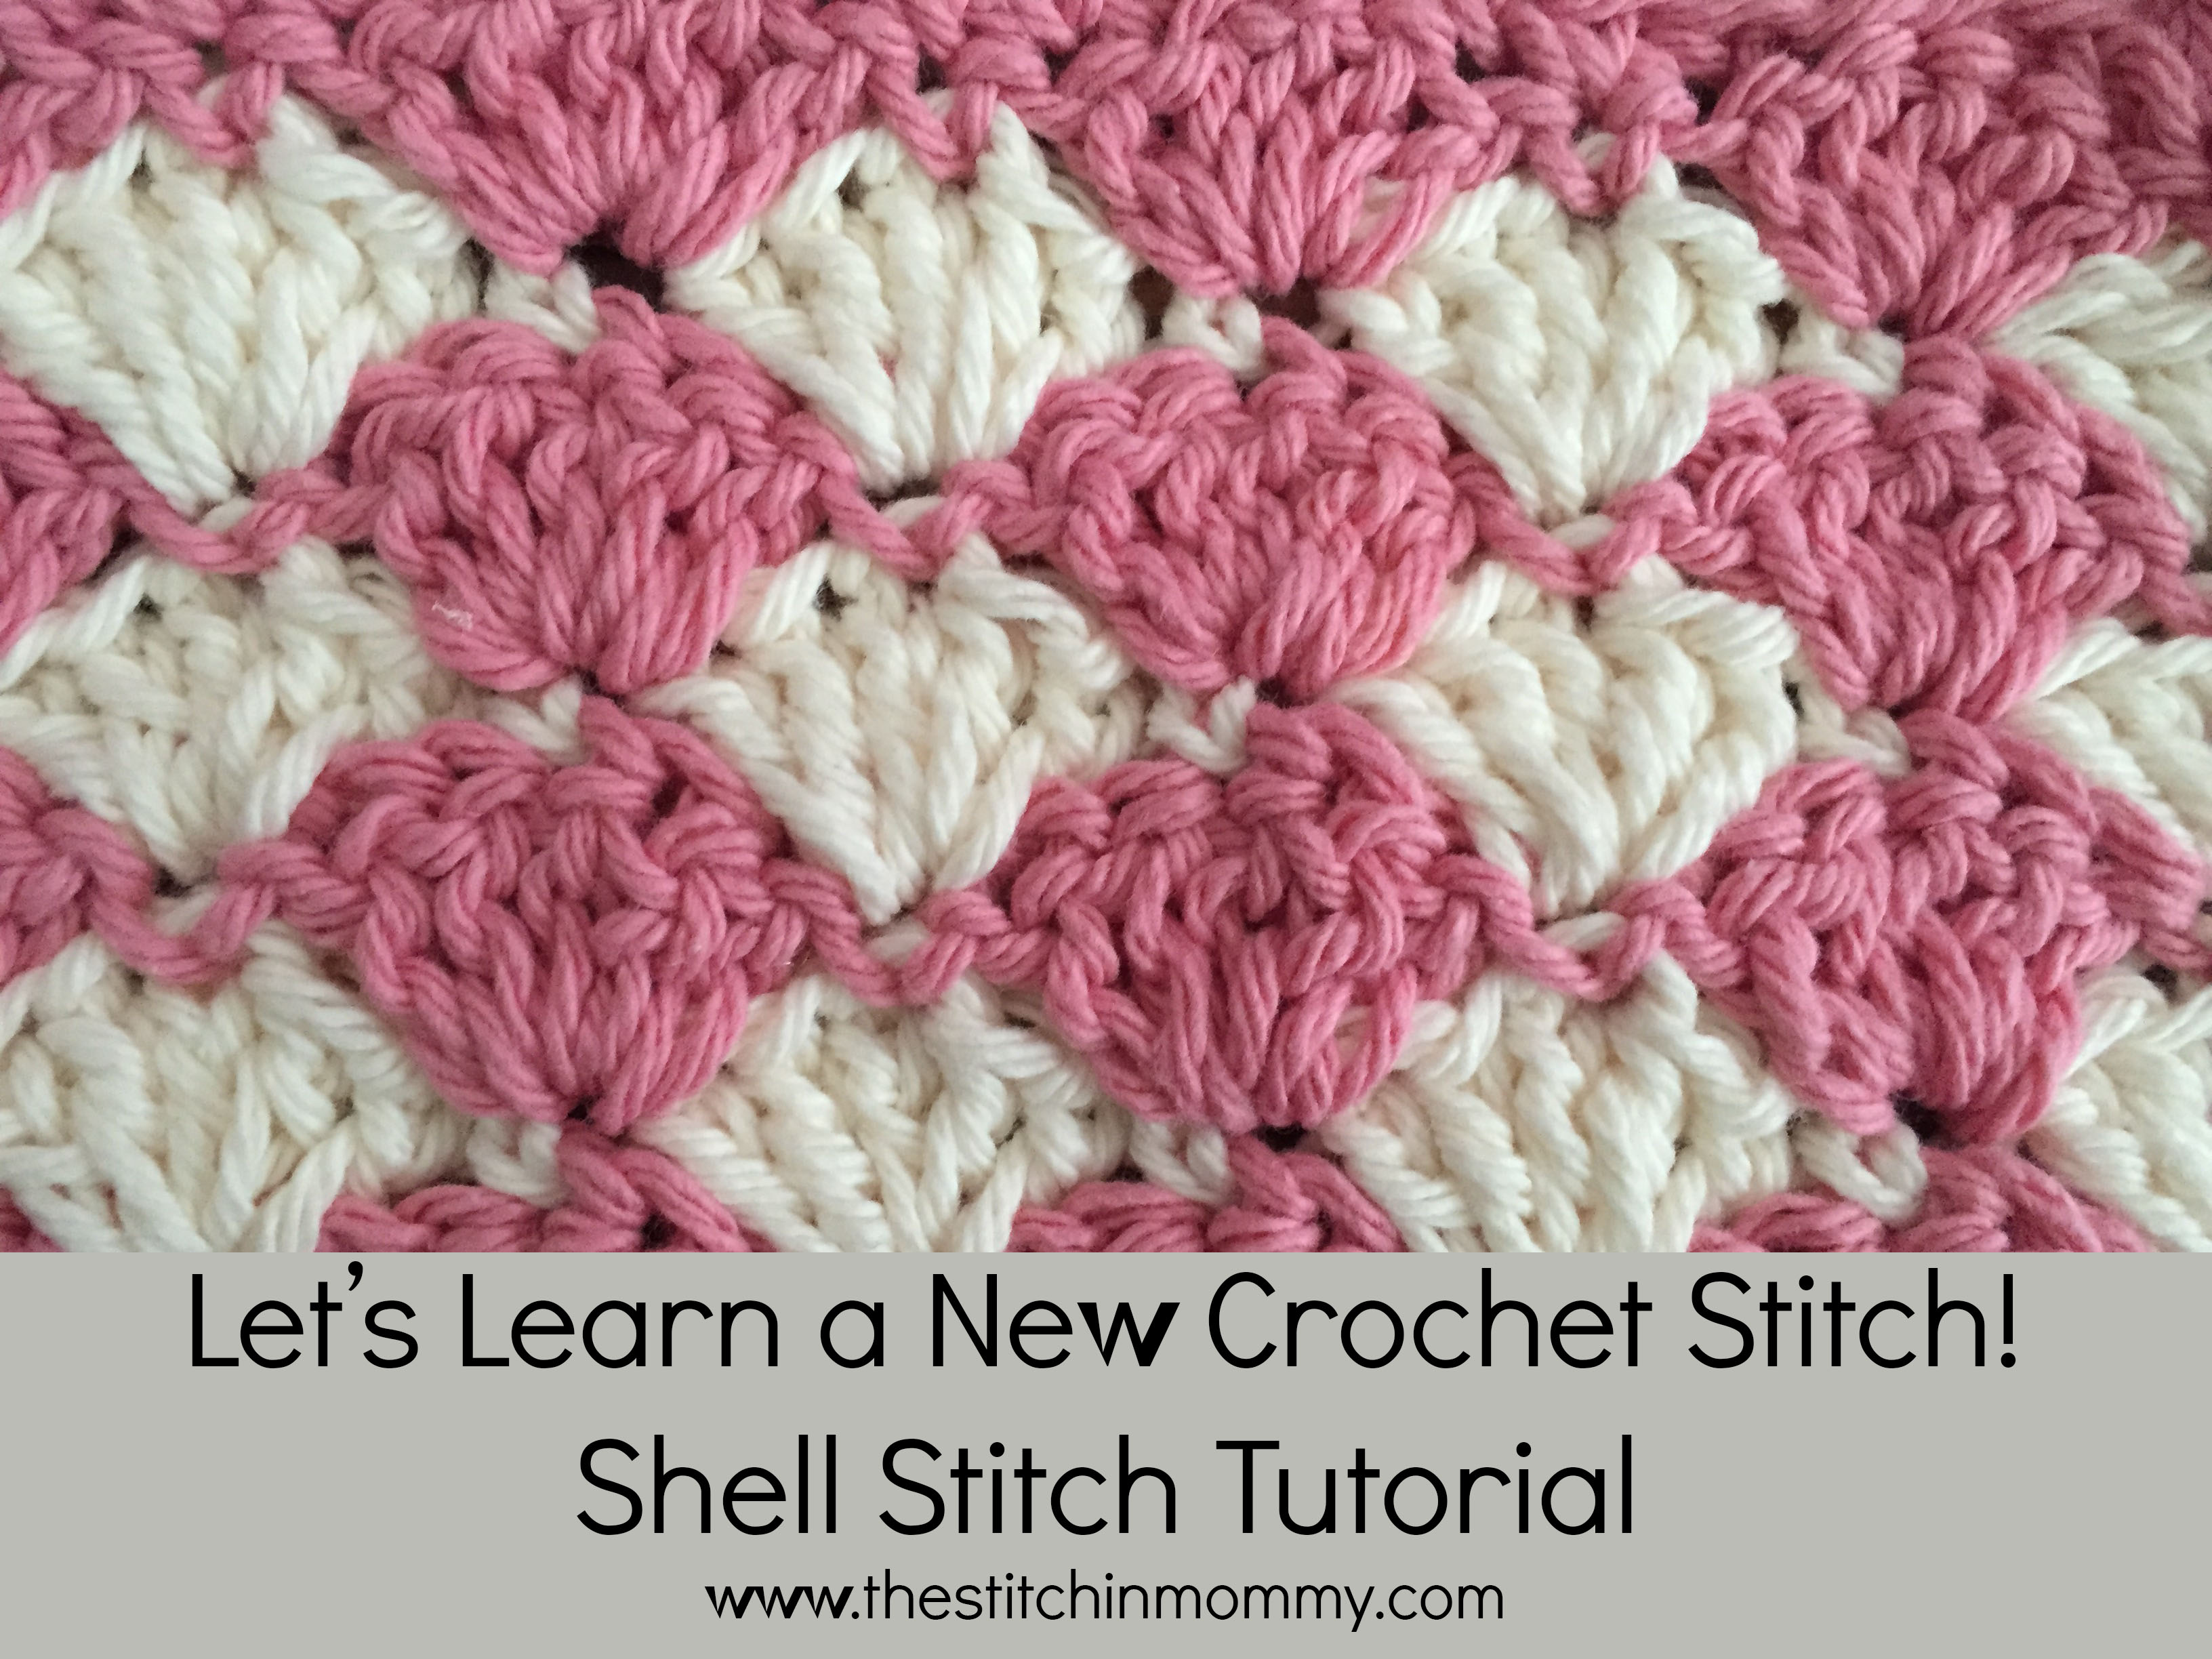 Crochet Baby Blanket Patterns Easy Free : Shell Stitch Tutorial - The Stitchin Mommy